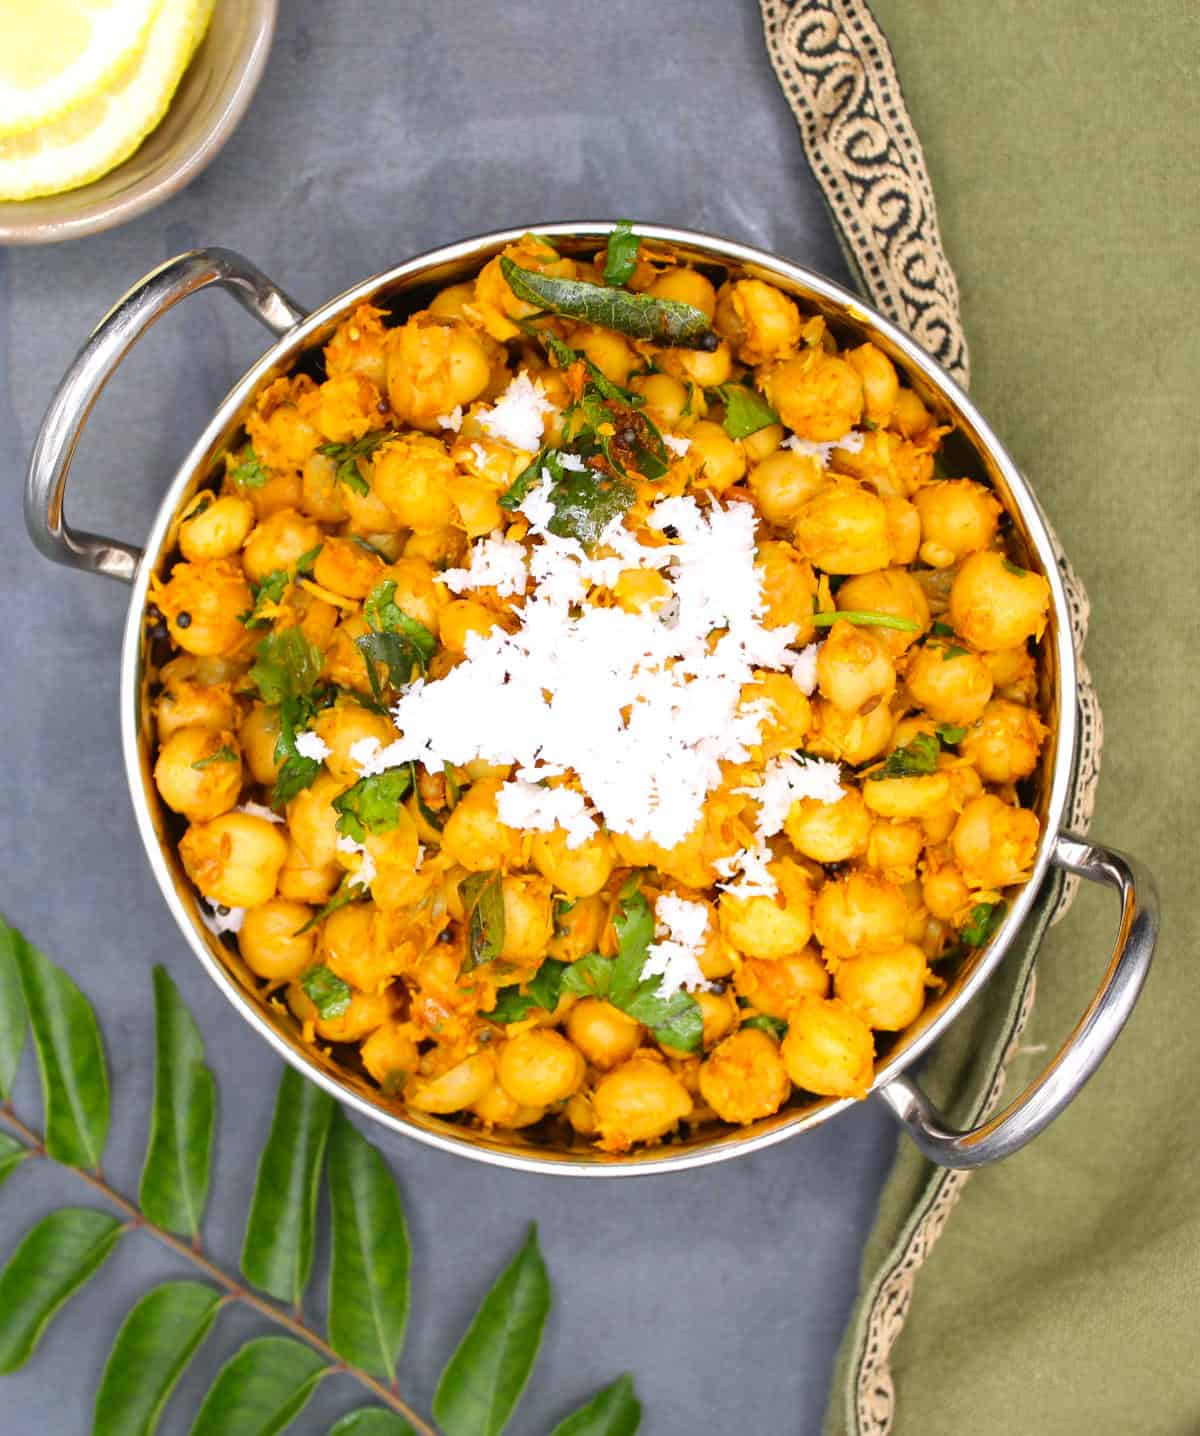 Overhead photo of a kadhai with chana sundal with curry leaves and lemon slices on the side.